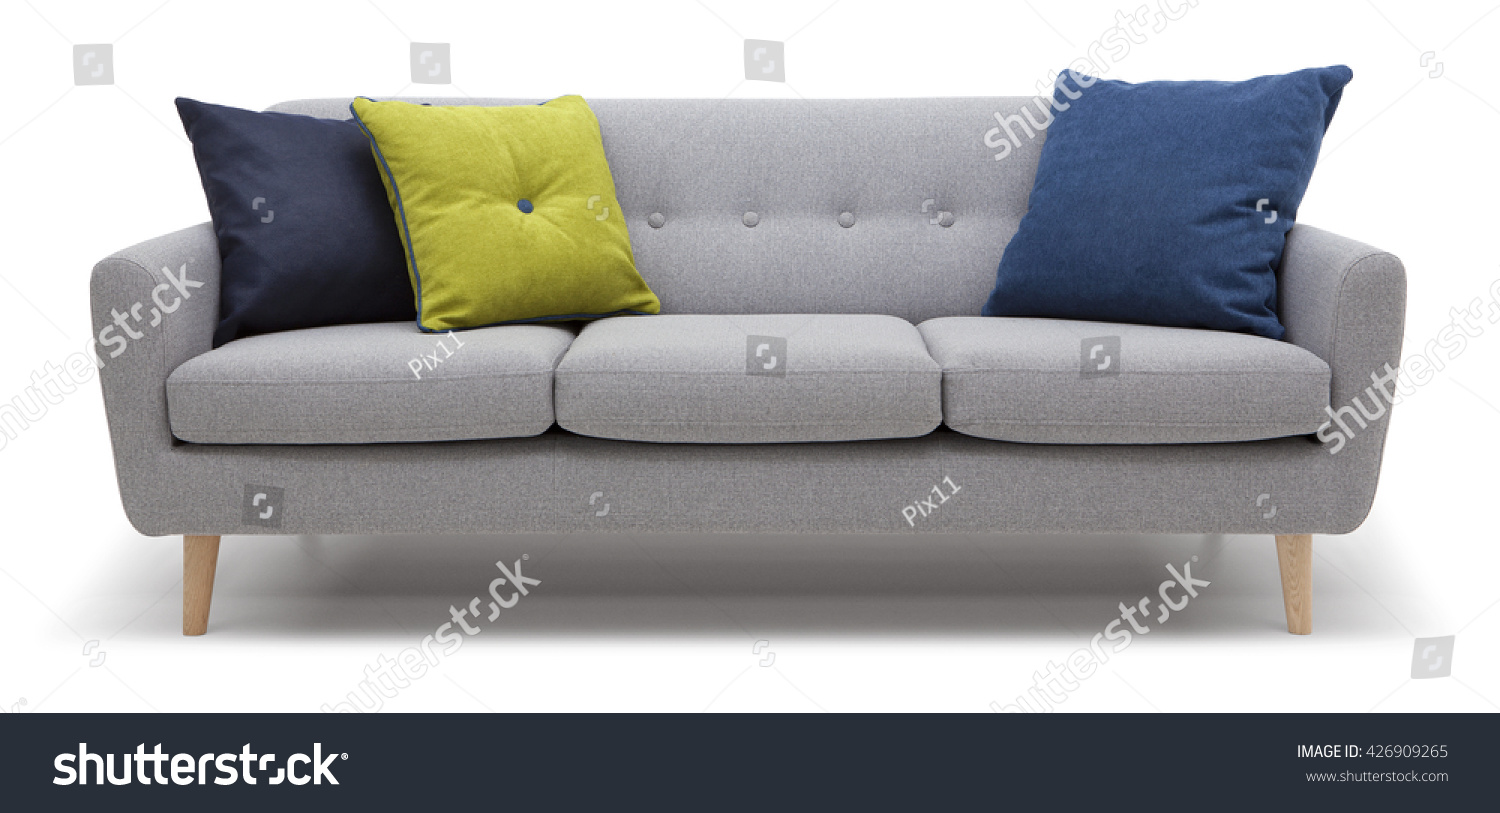 Picture of: Modern Sofa Stock Photo Edit Now 426909265